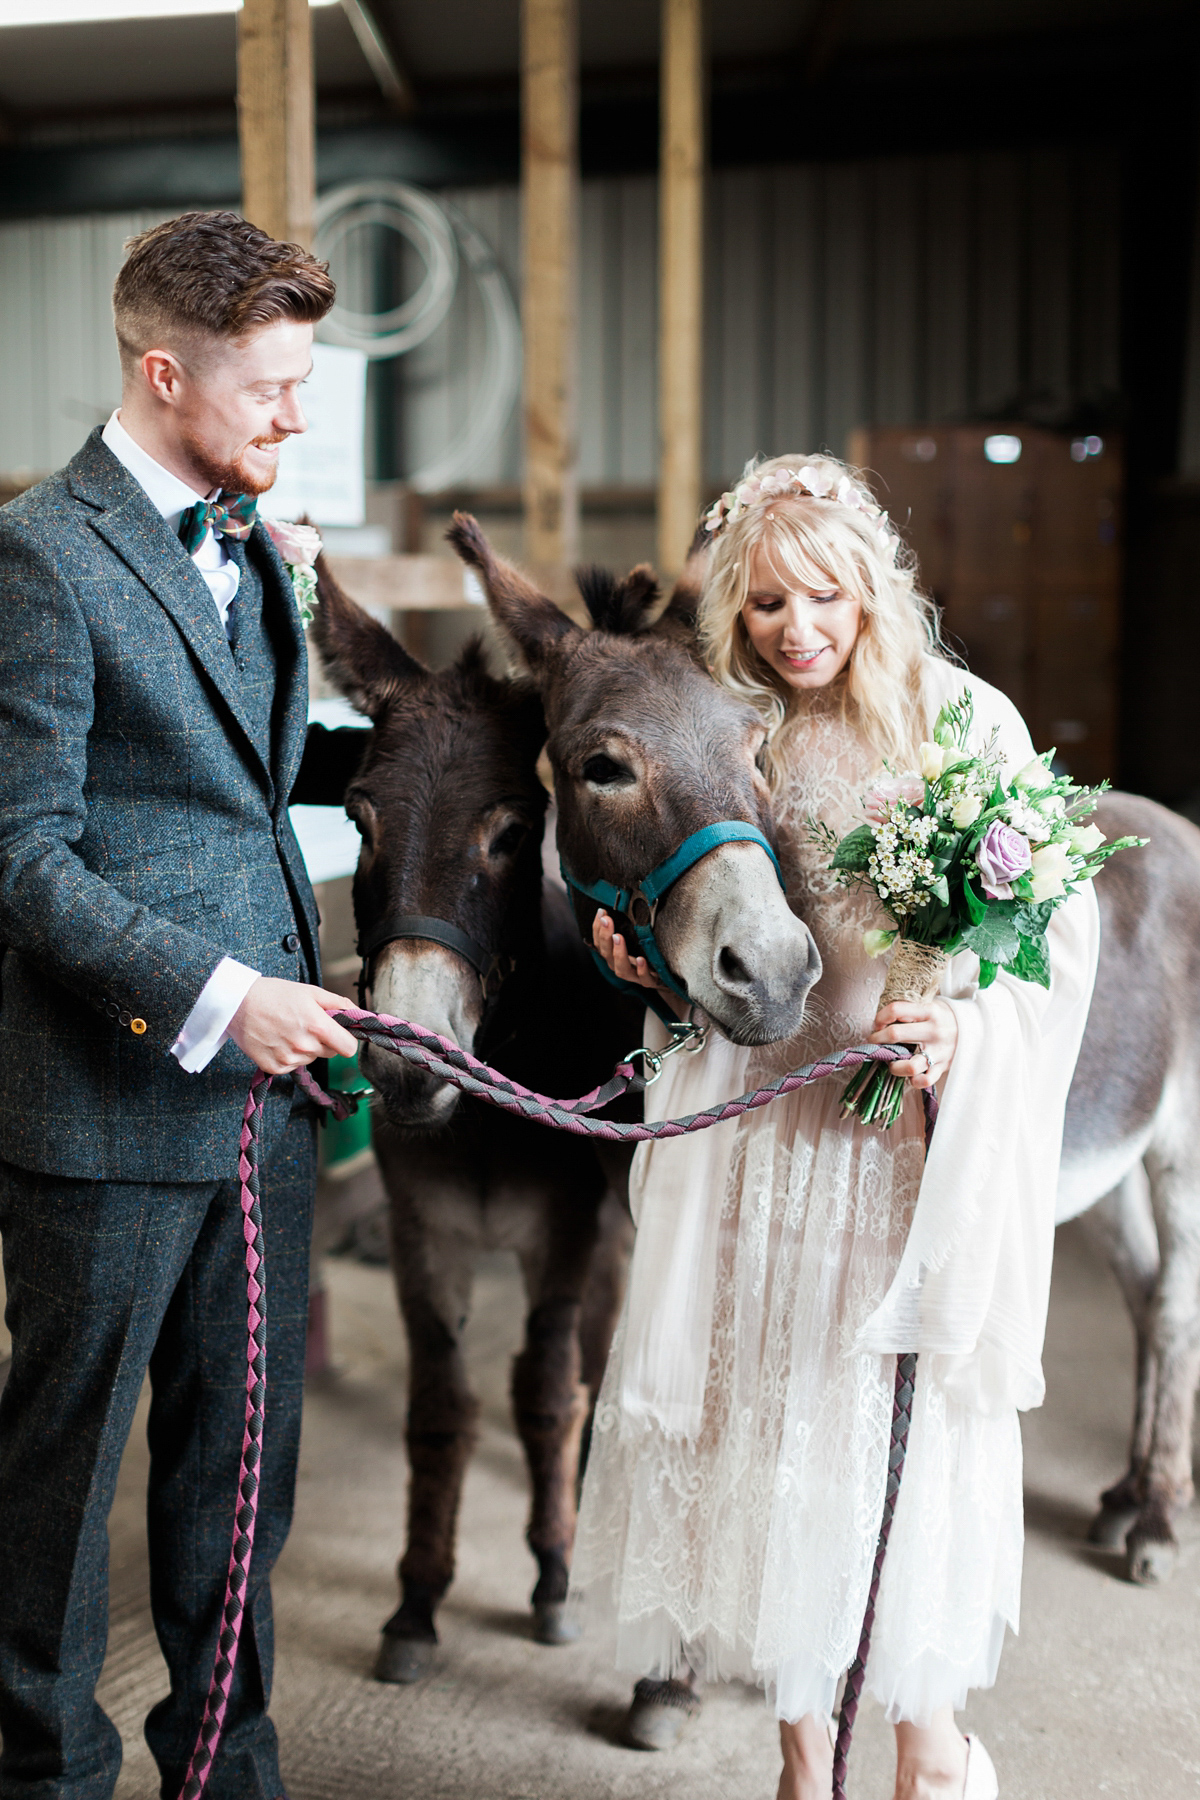 Rembo Styling Drop Waist Lace for a Rustic and Rural Farm Wedding